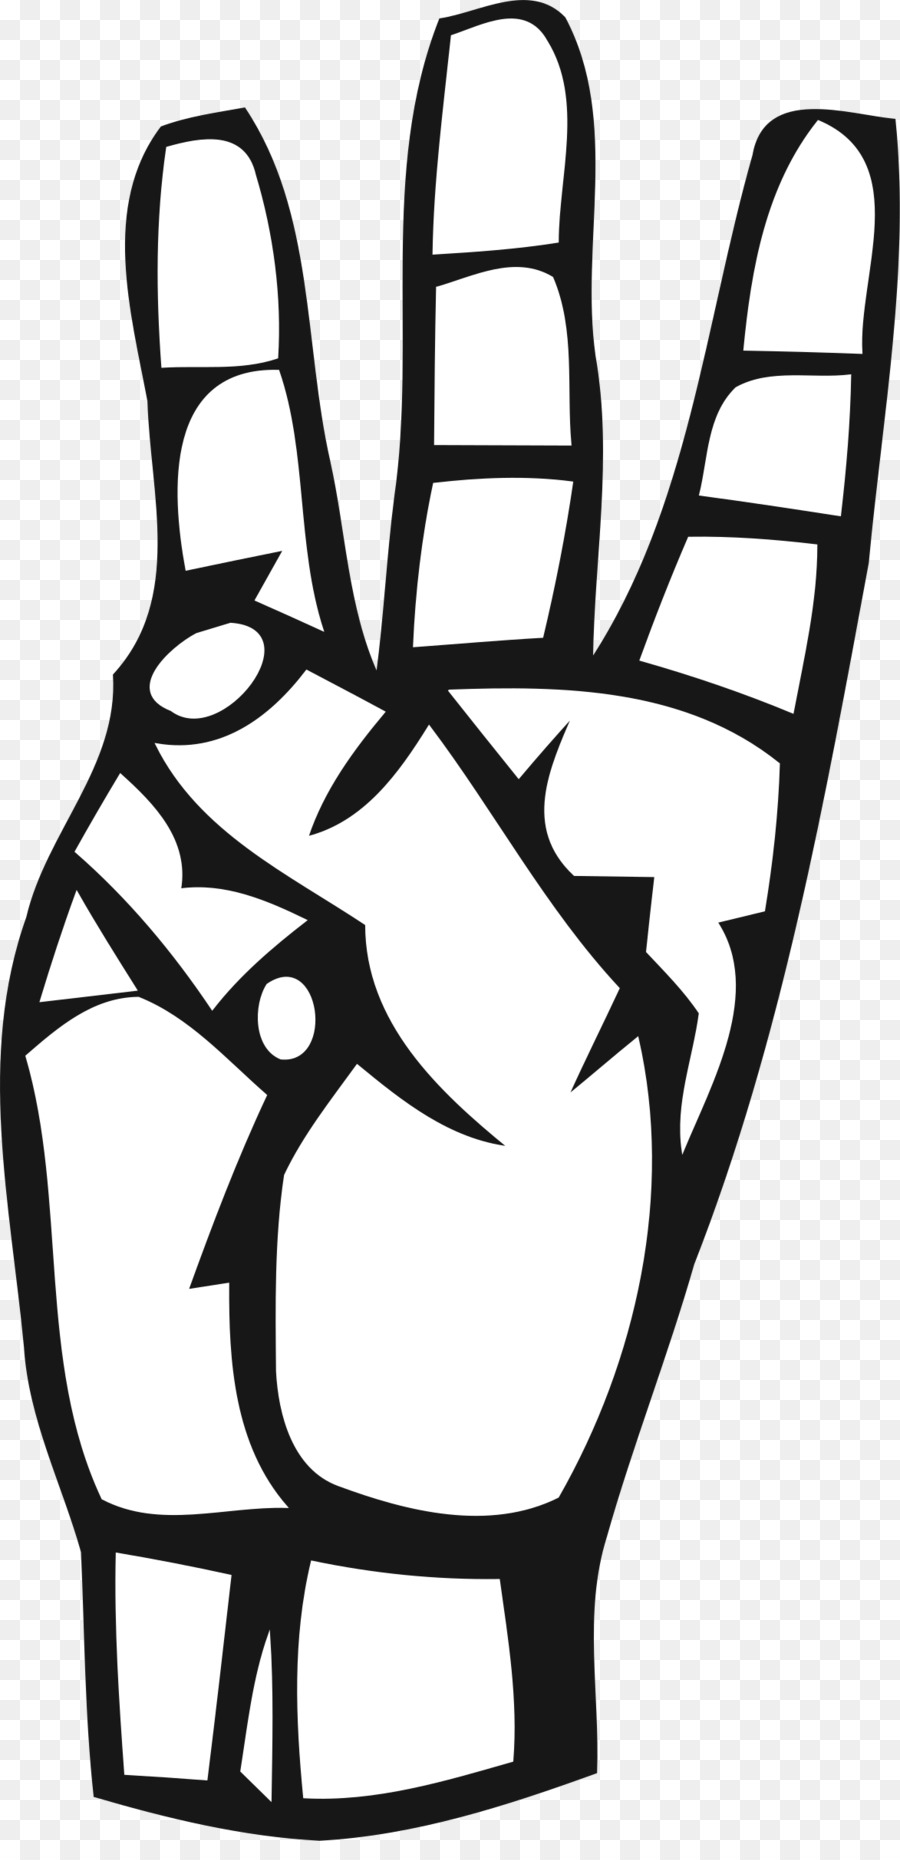 sign language clipart water